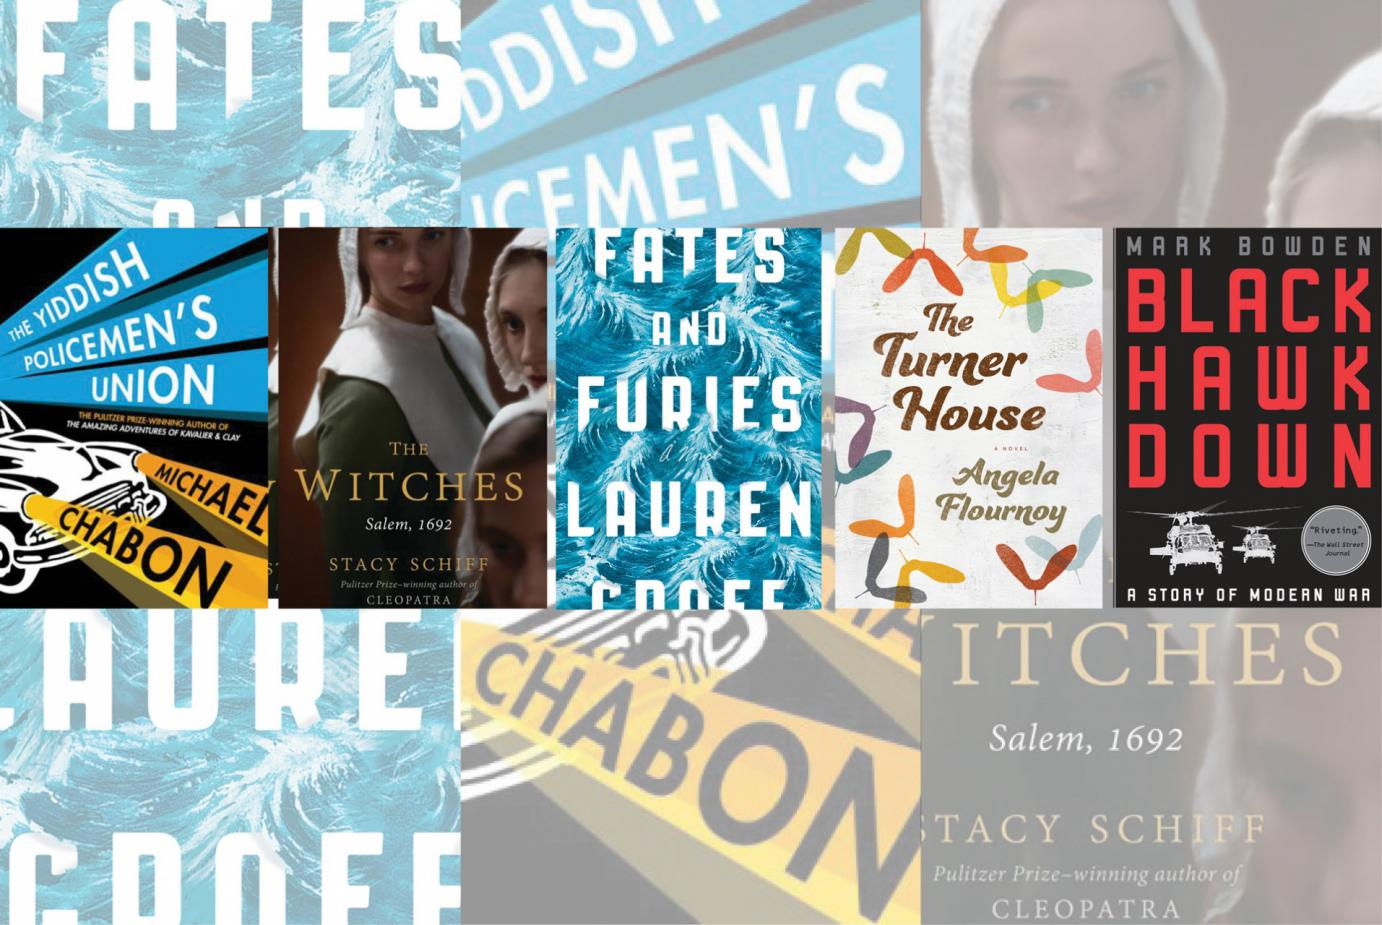 Inaugural LitFest to Feature Michael Chabon, Lauren Groff '01 and More